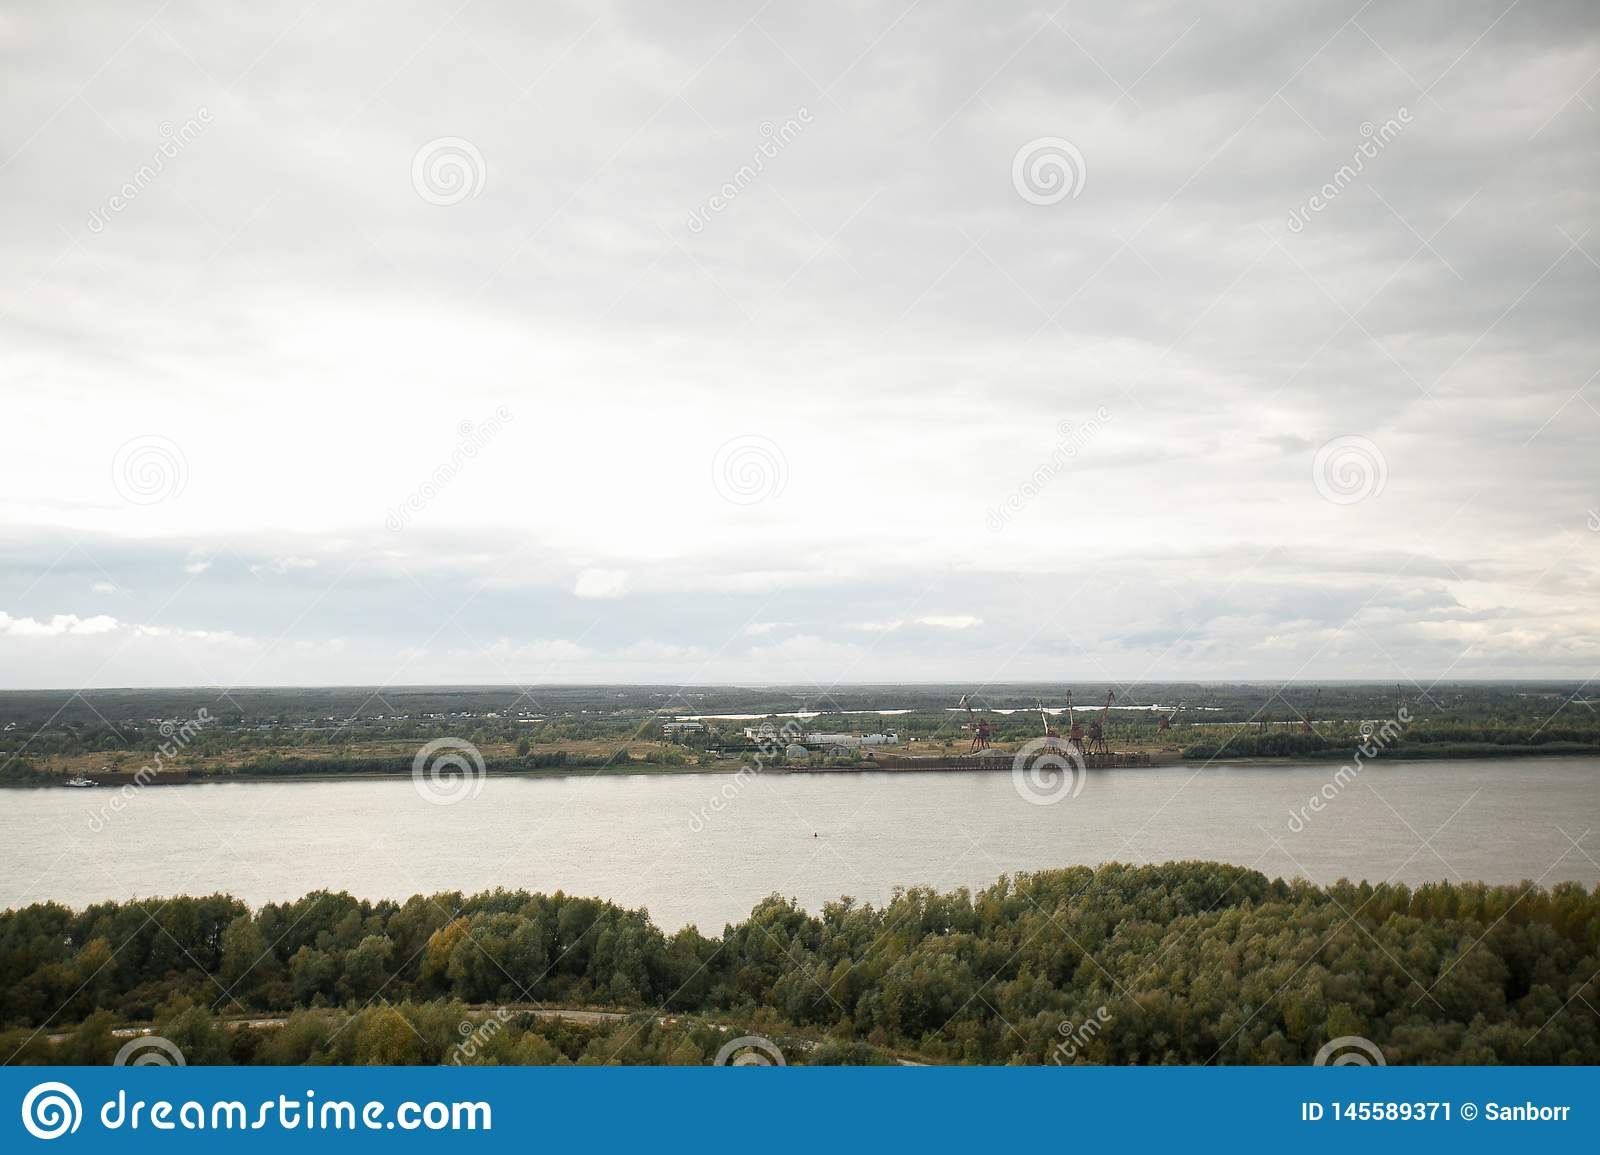 Beautiful summer landscape. The forest along the broad river. Nearby there is an industrial base and a small village